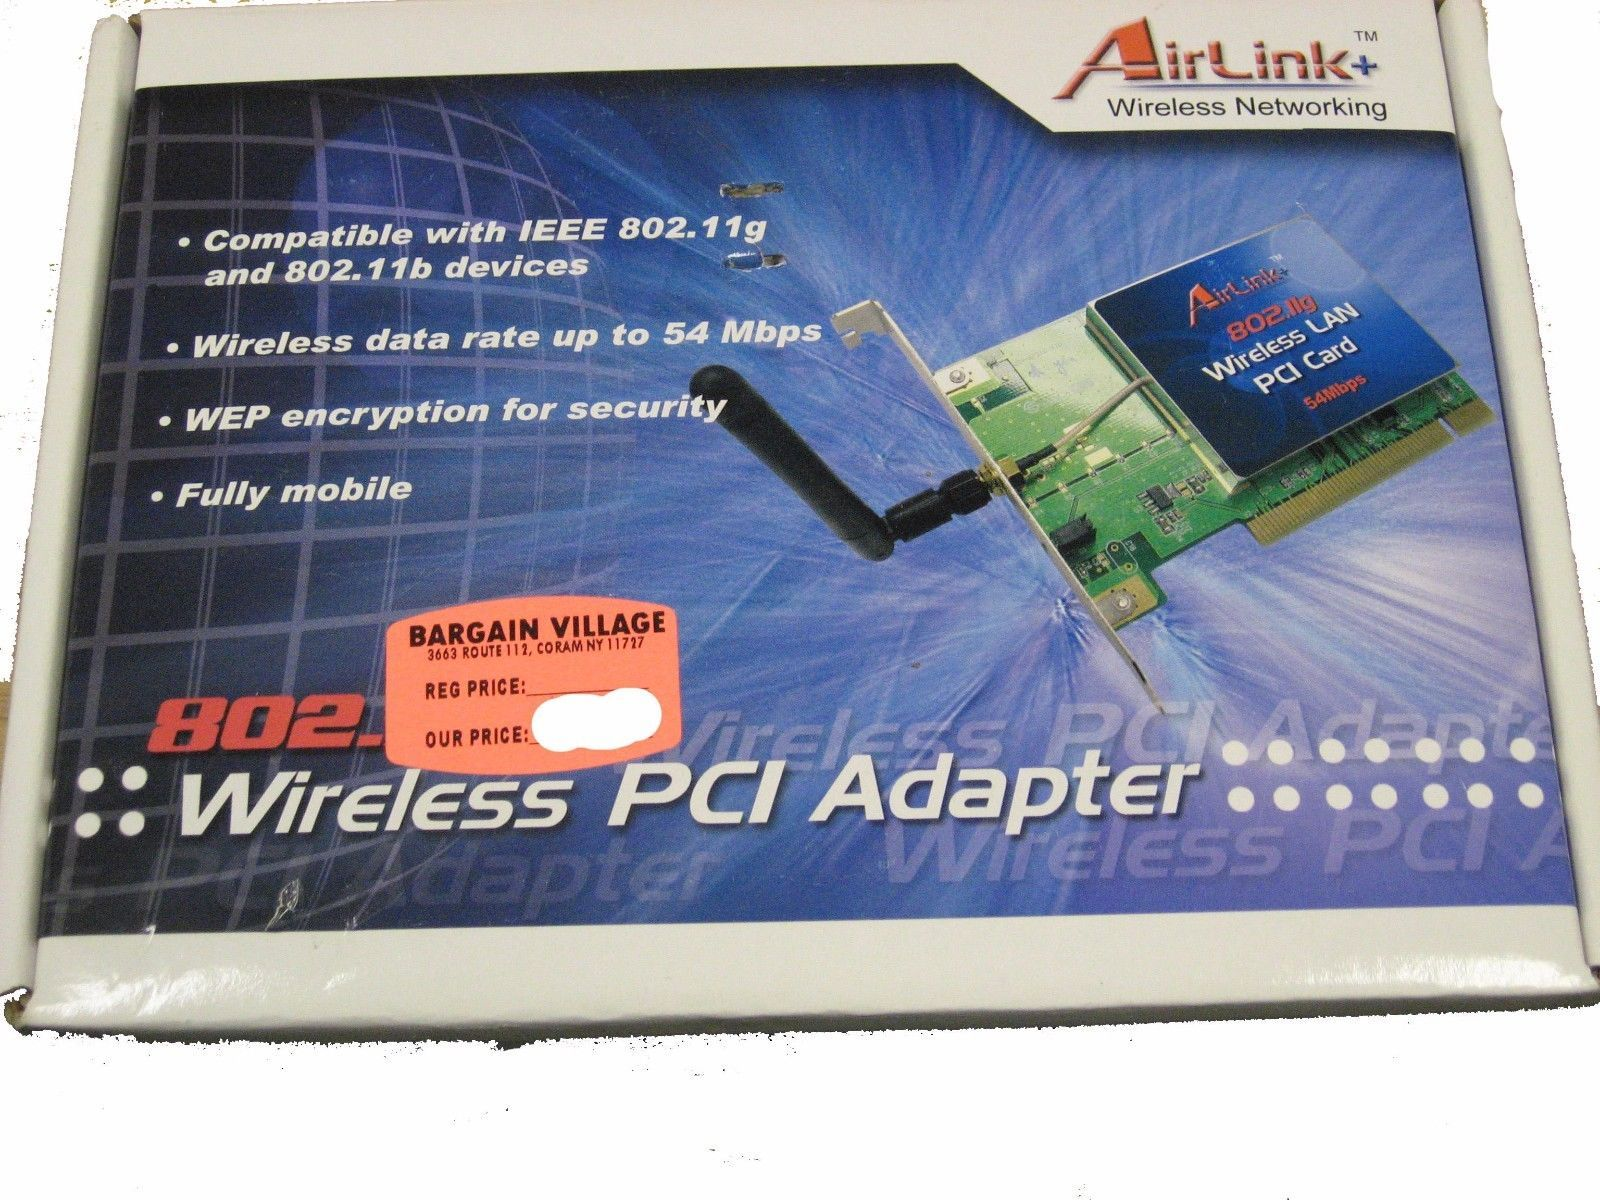 AIRLINK WIRELESS PCI ADAPTER